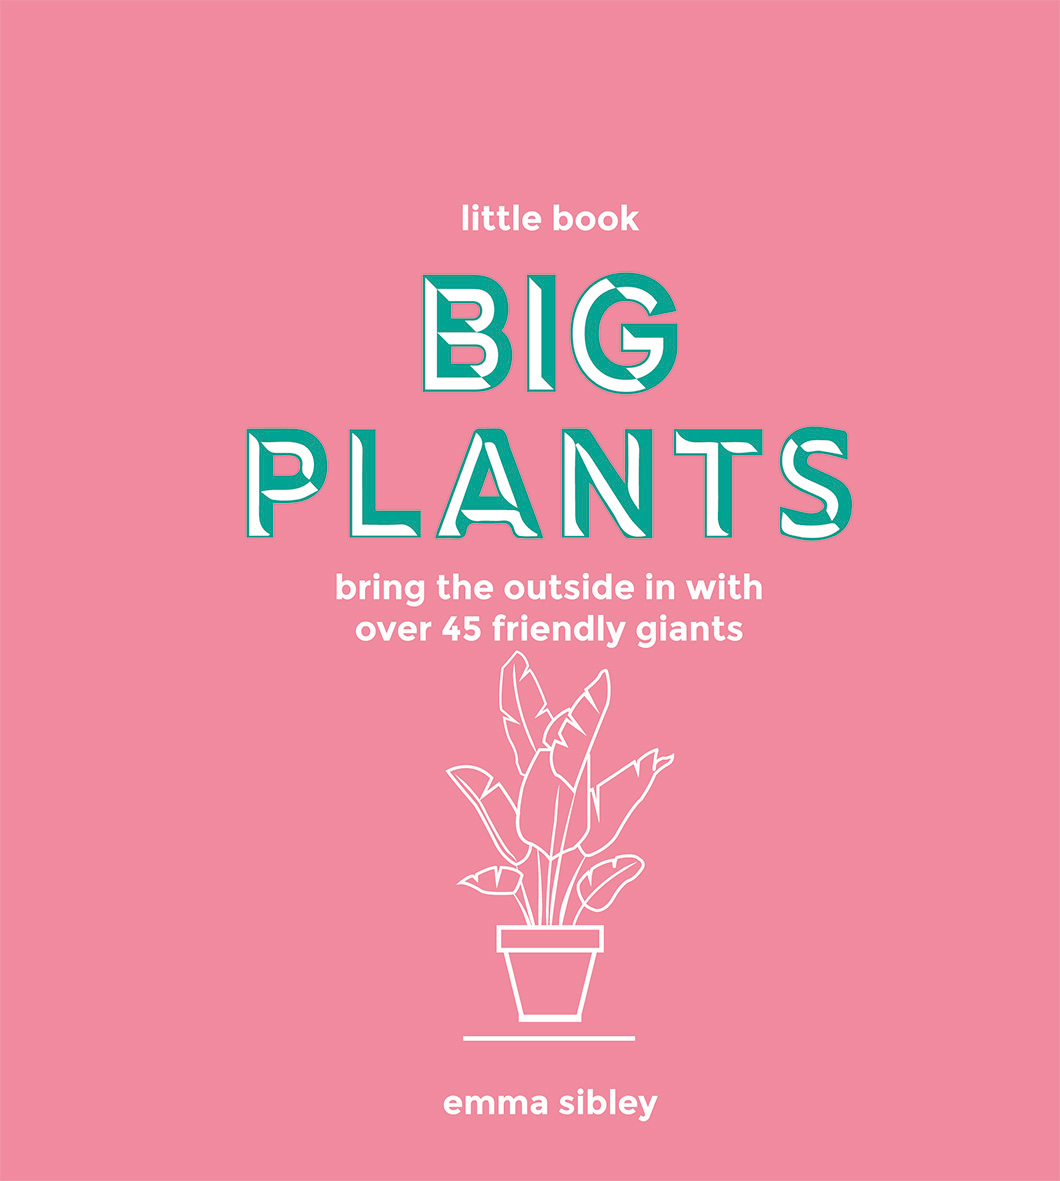 Little Book, Big Plants